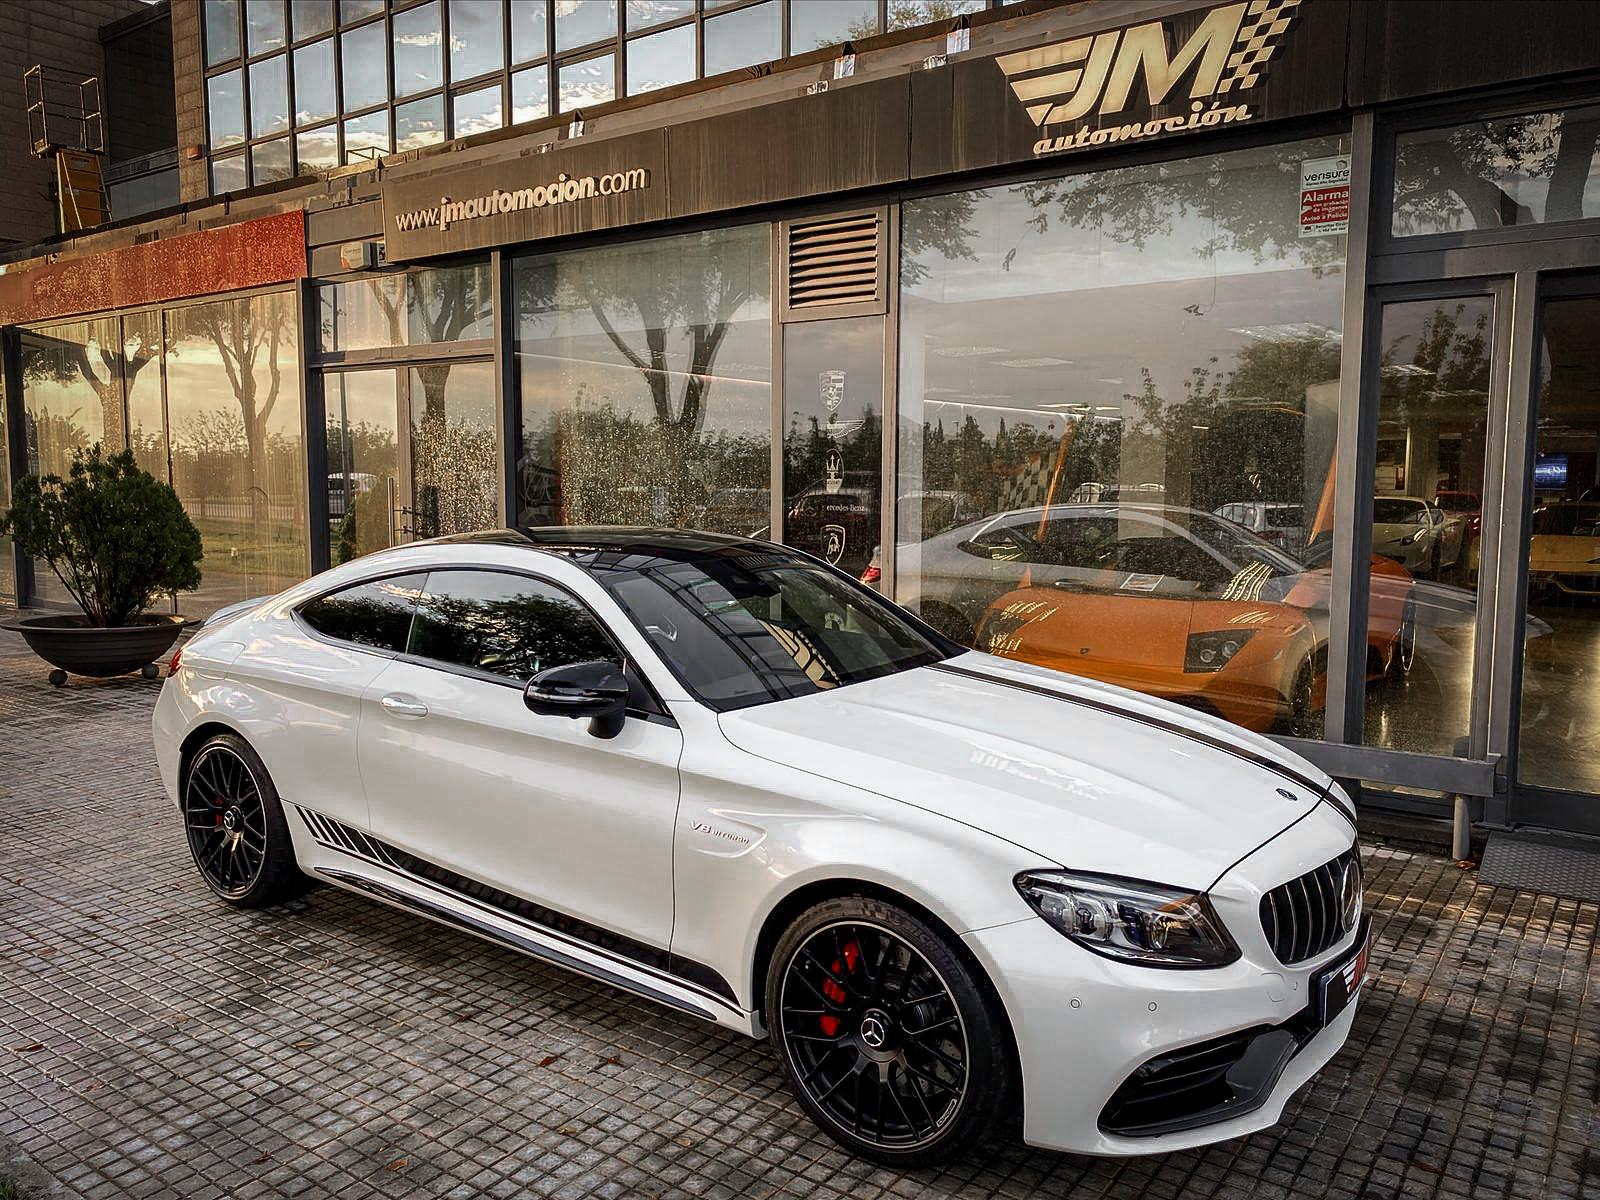 MERCEDES-BENZ C63S AMG COUPE -FULL OPTIONS, IVA DEDUCIBLE-